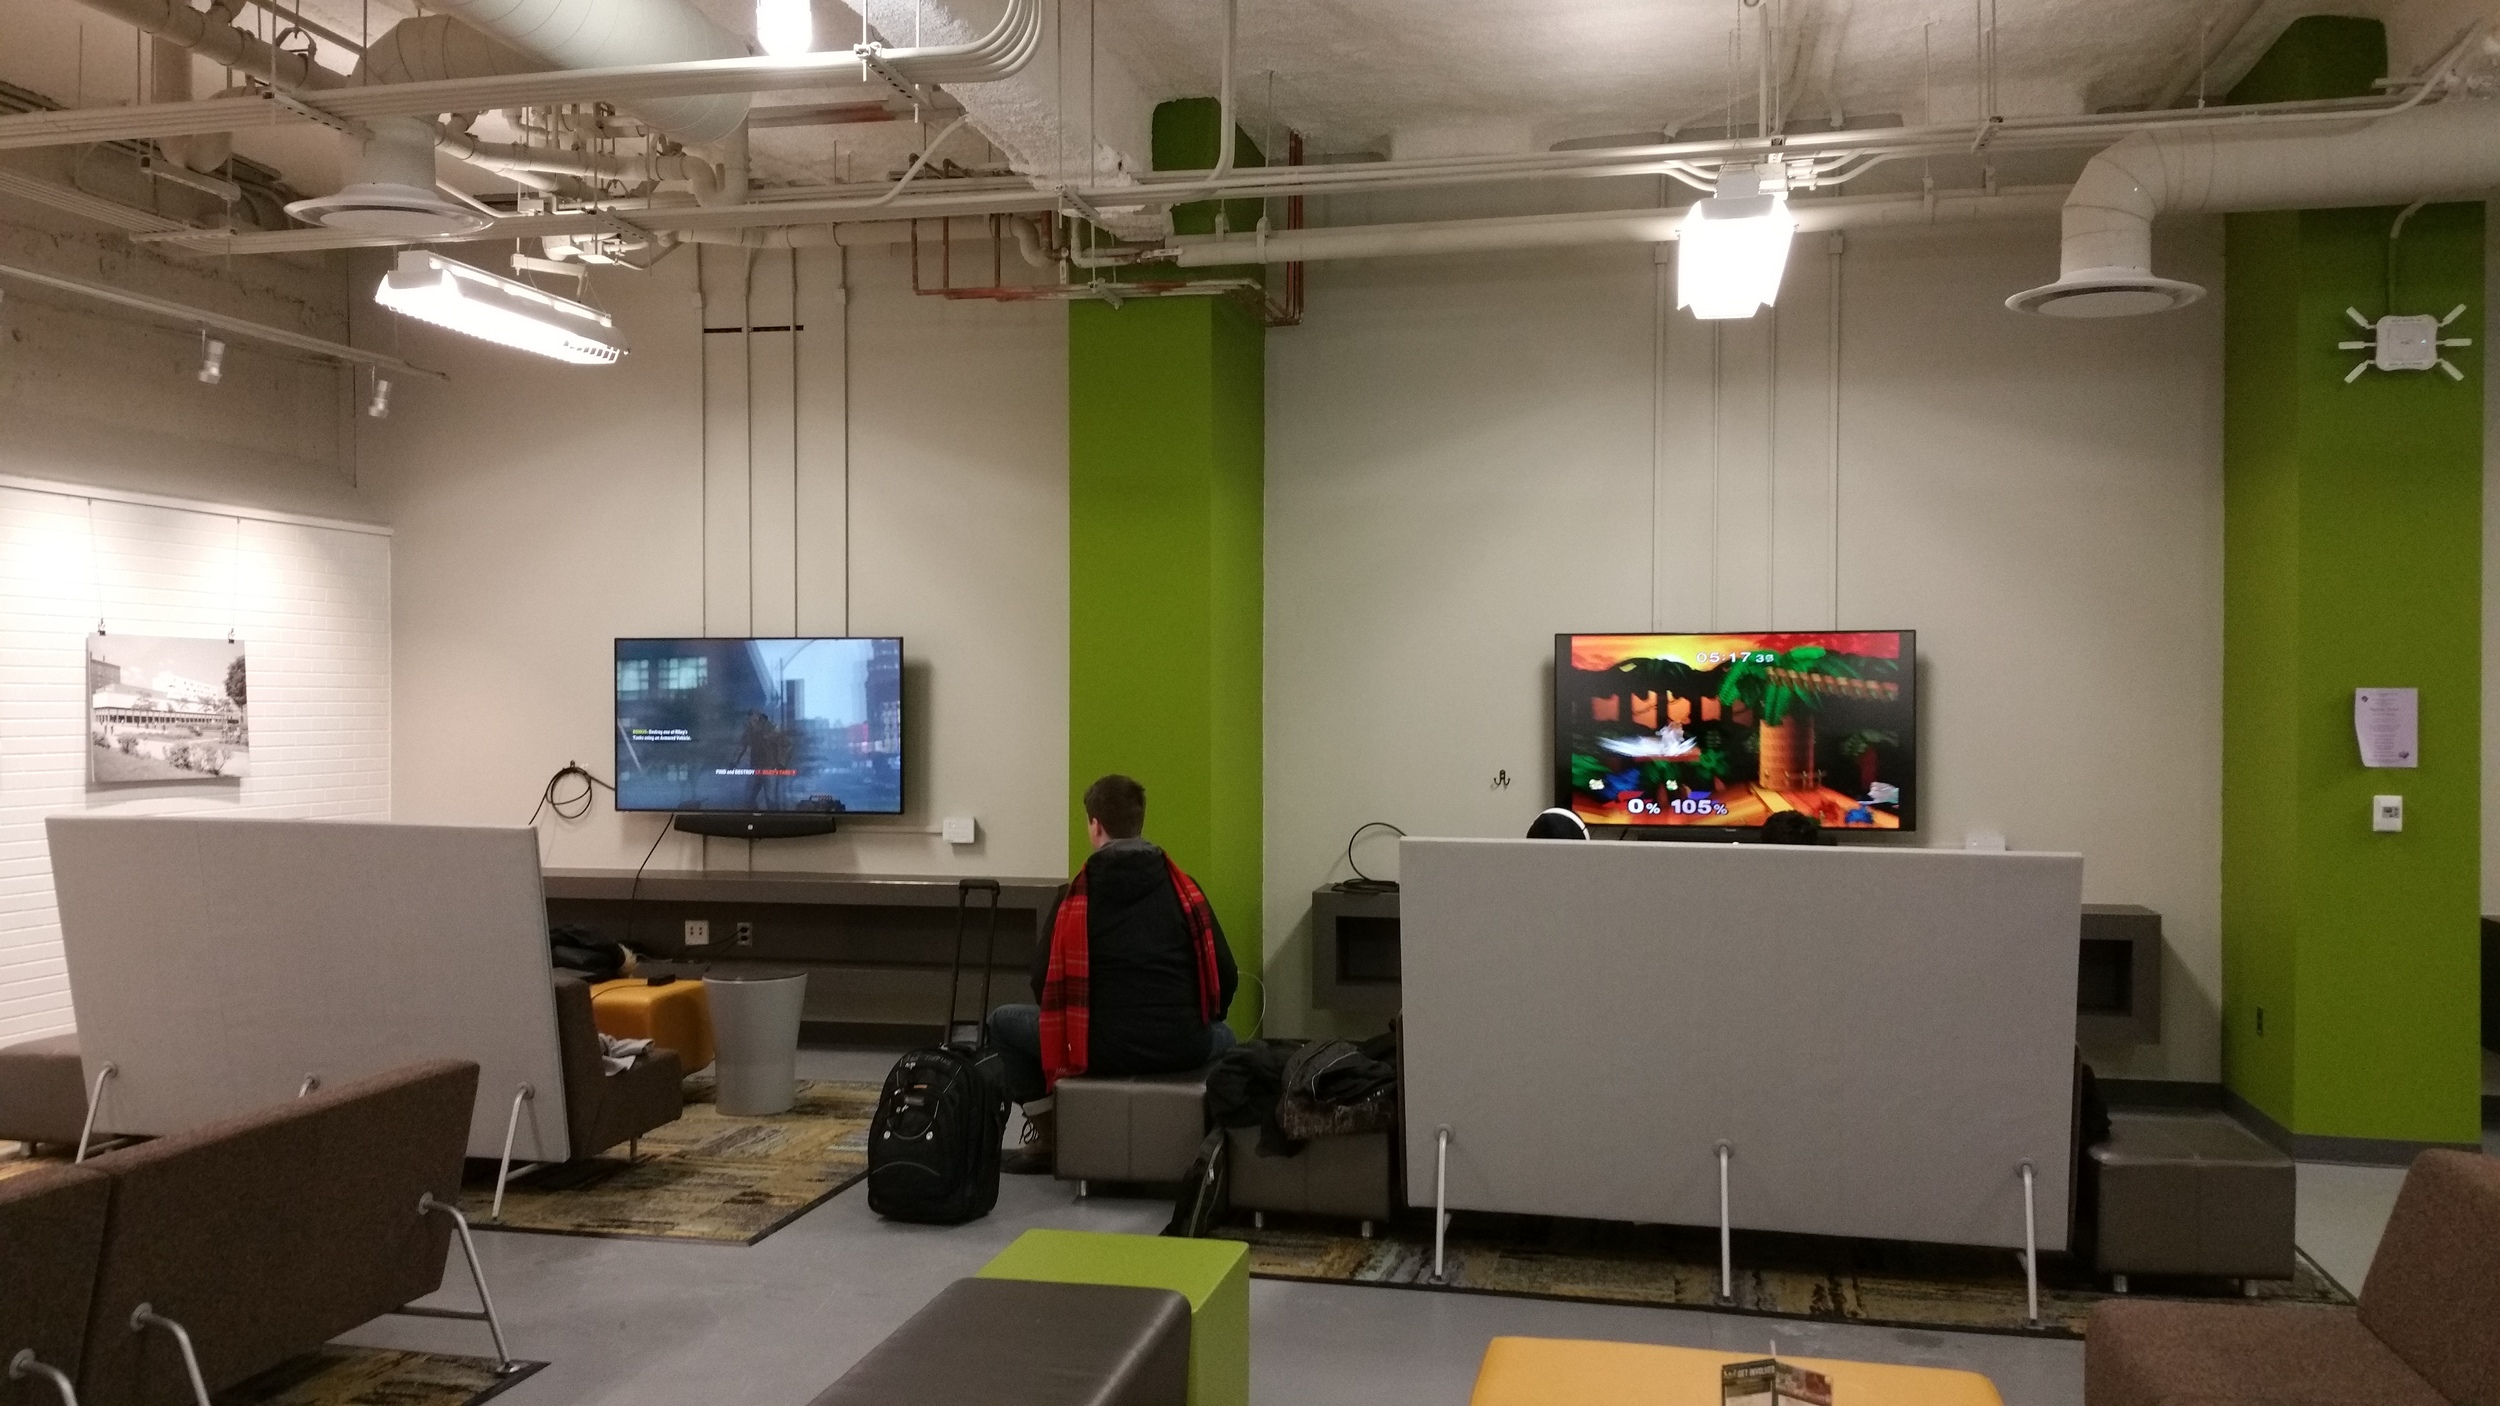 The Student Center at Wayne State University (my grad school) is  undergoing a $27 million renovation . One of the new additions is this gaming area with screens and cables, ready to connect to any gaming system or computer.